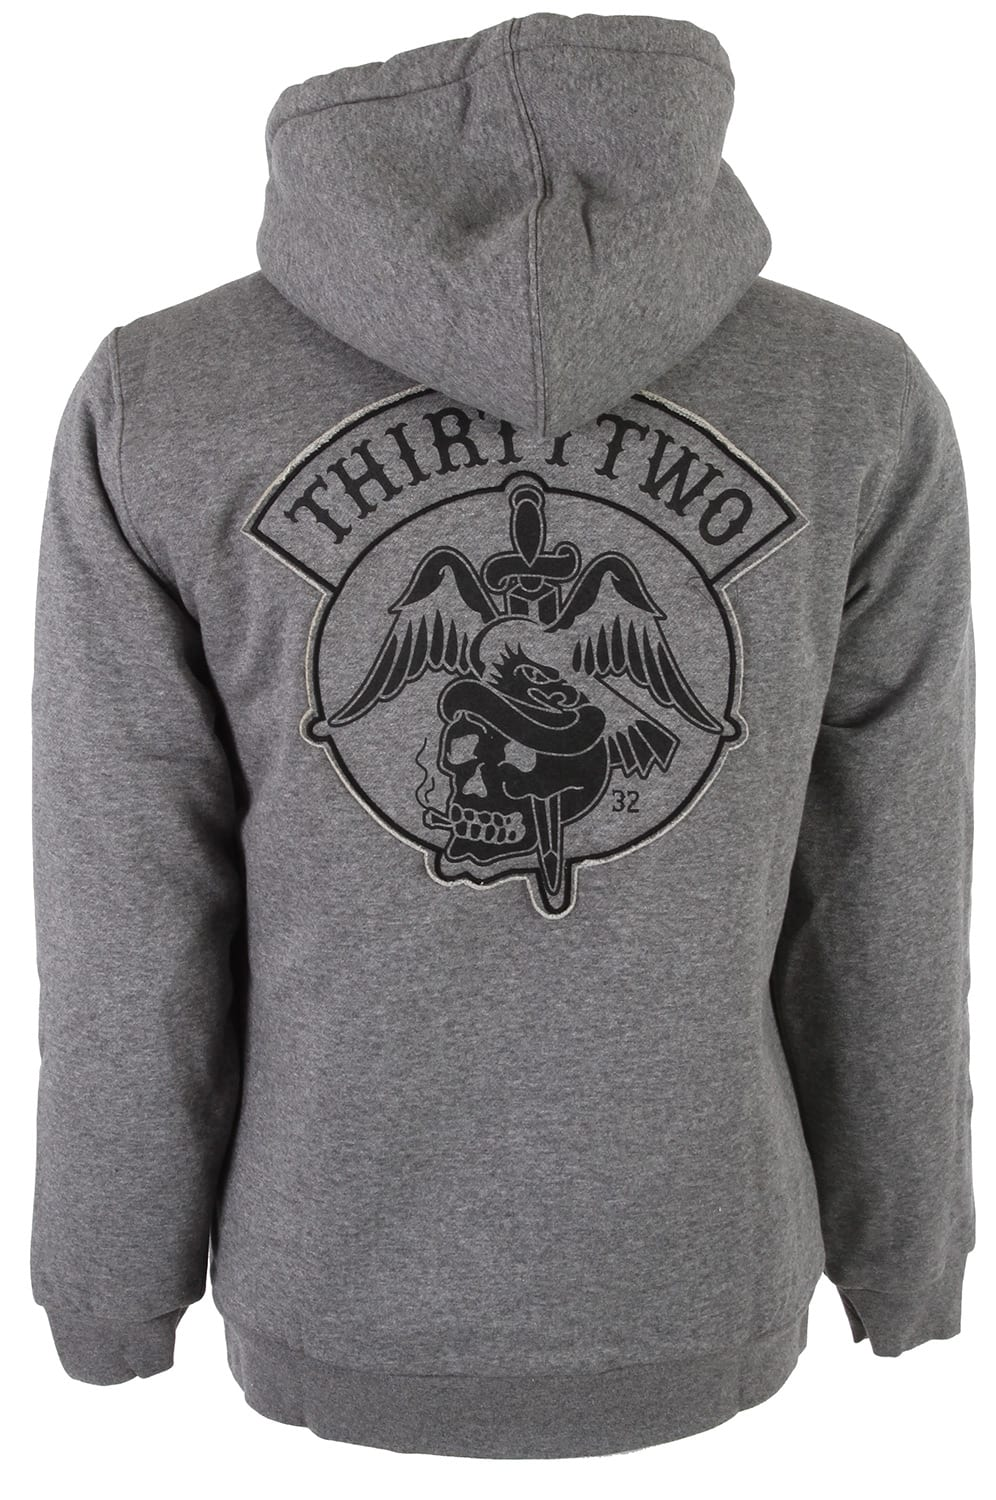 Thirty two hoodie